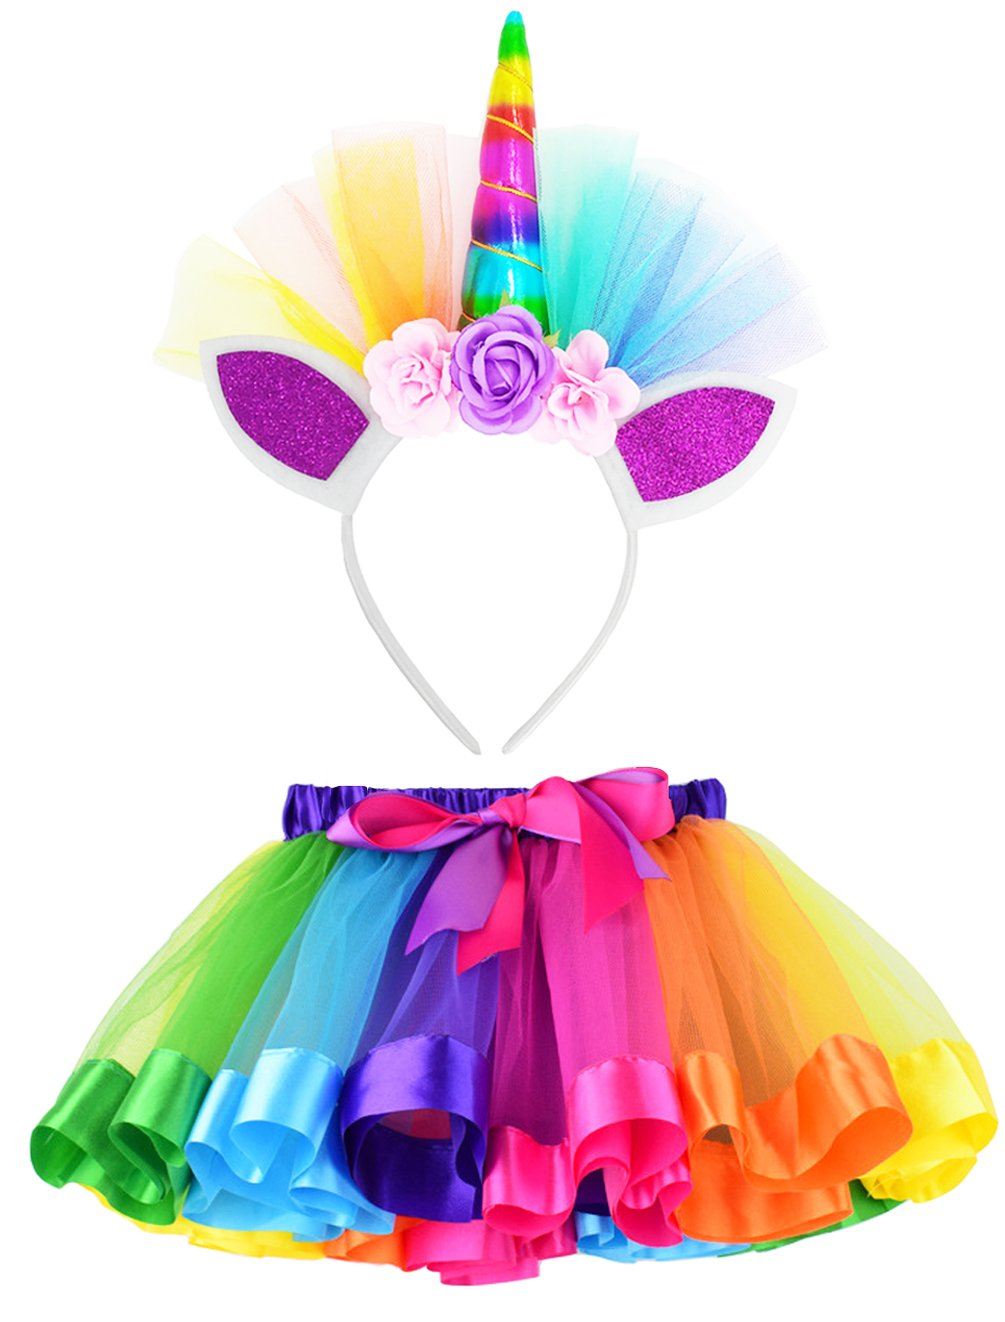 Trickortreat Unisex-Children Kids Costume, Rainbow, M,2-4 Years